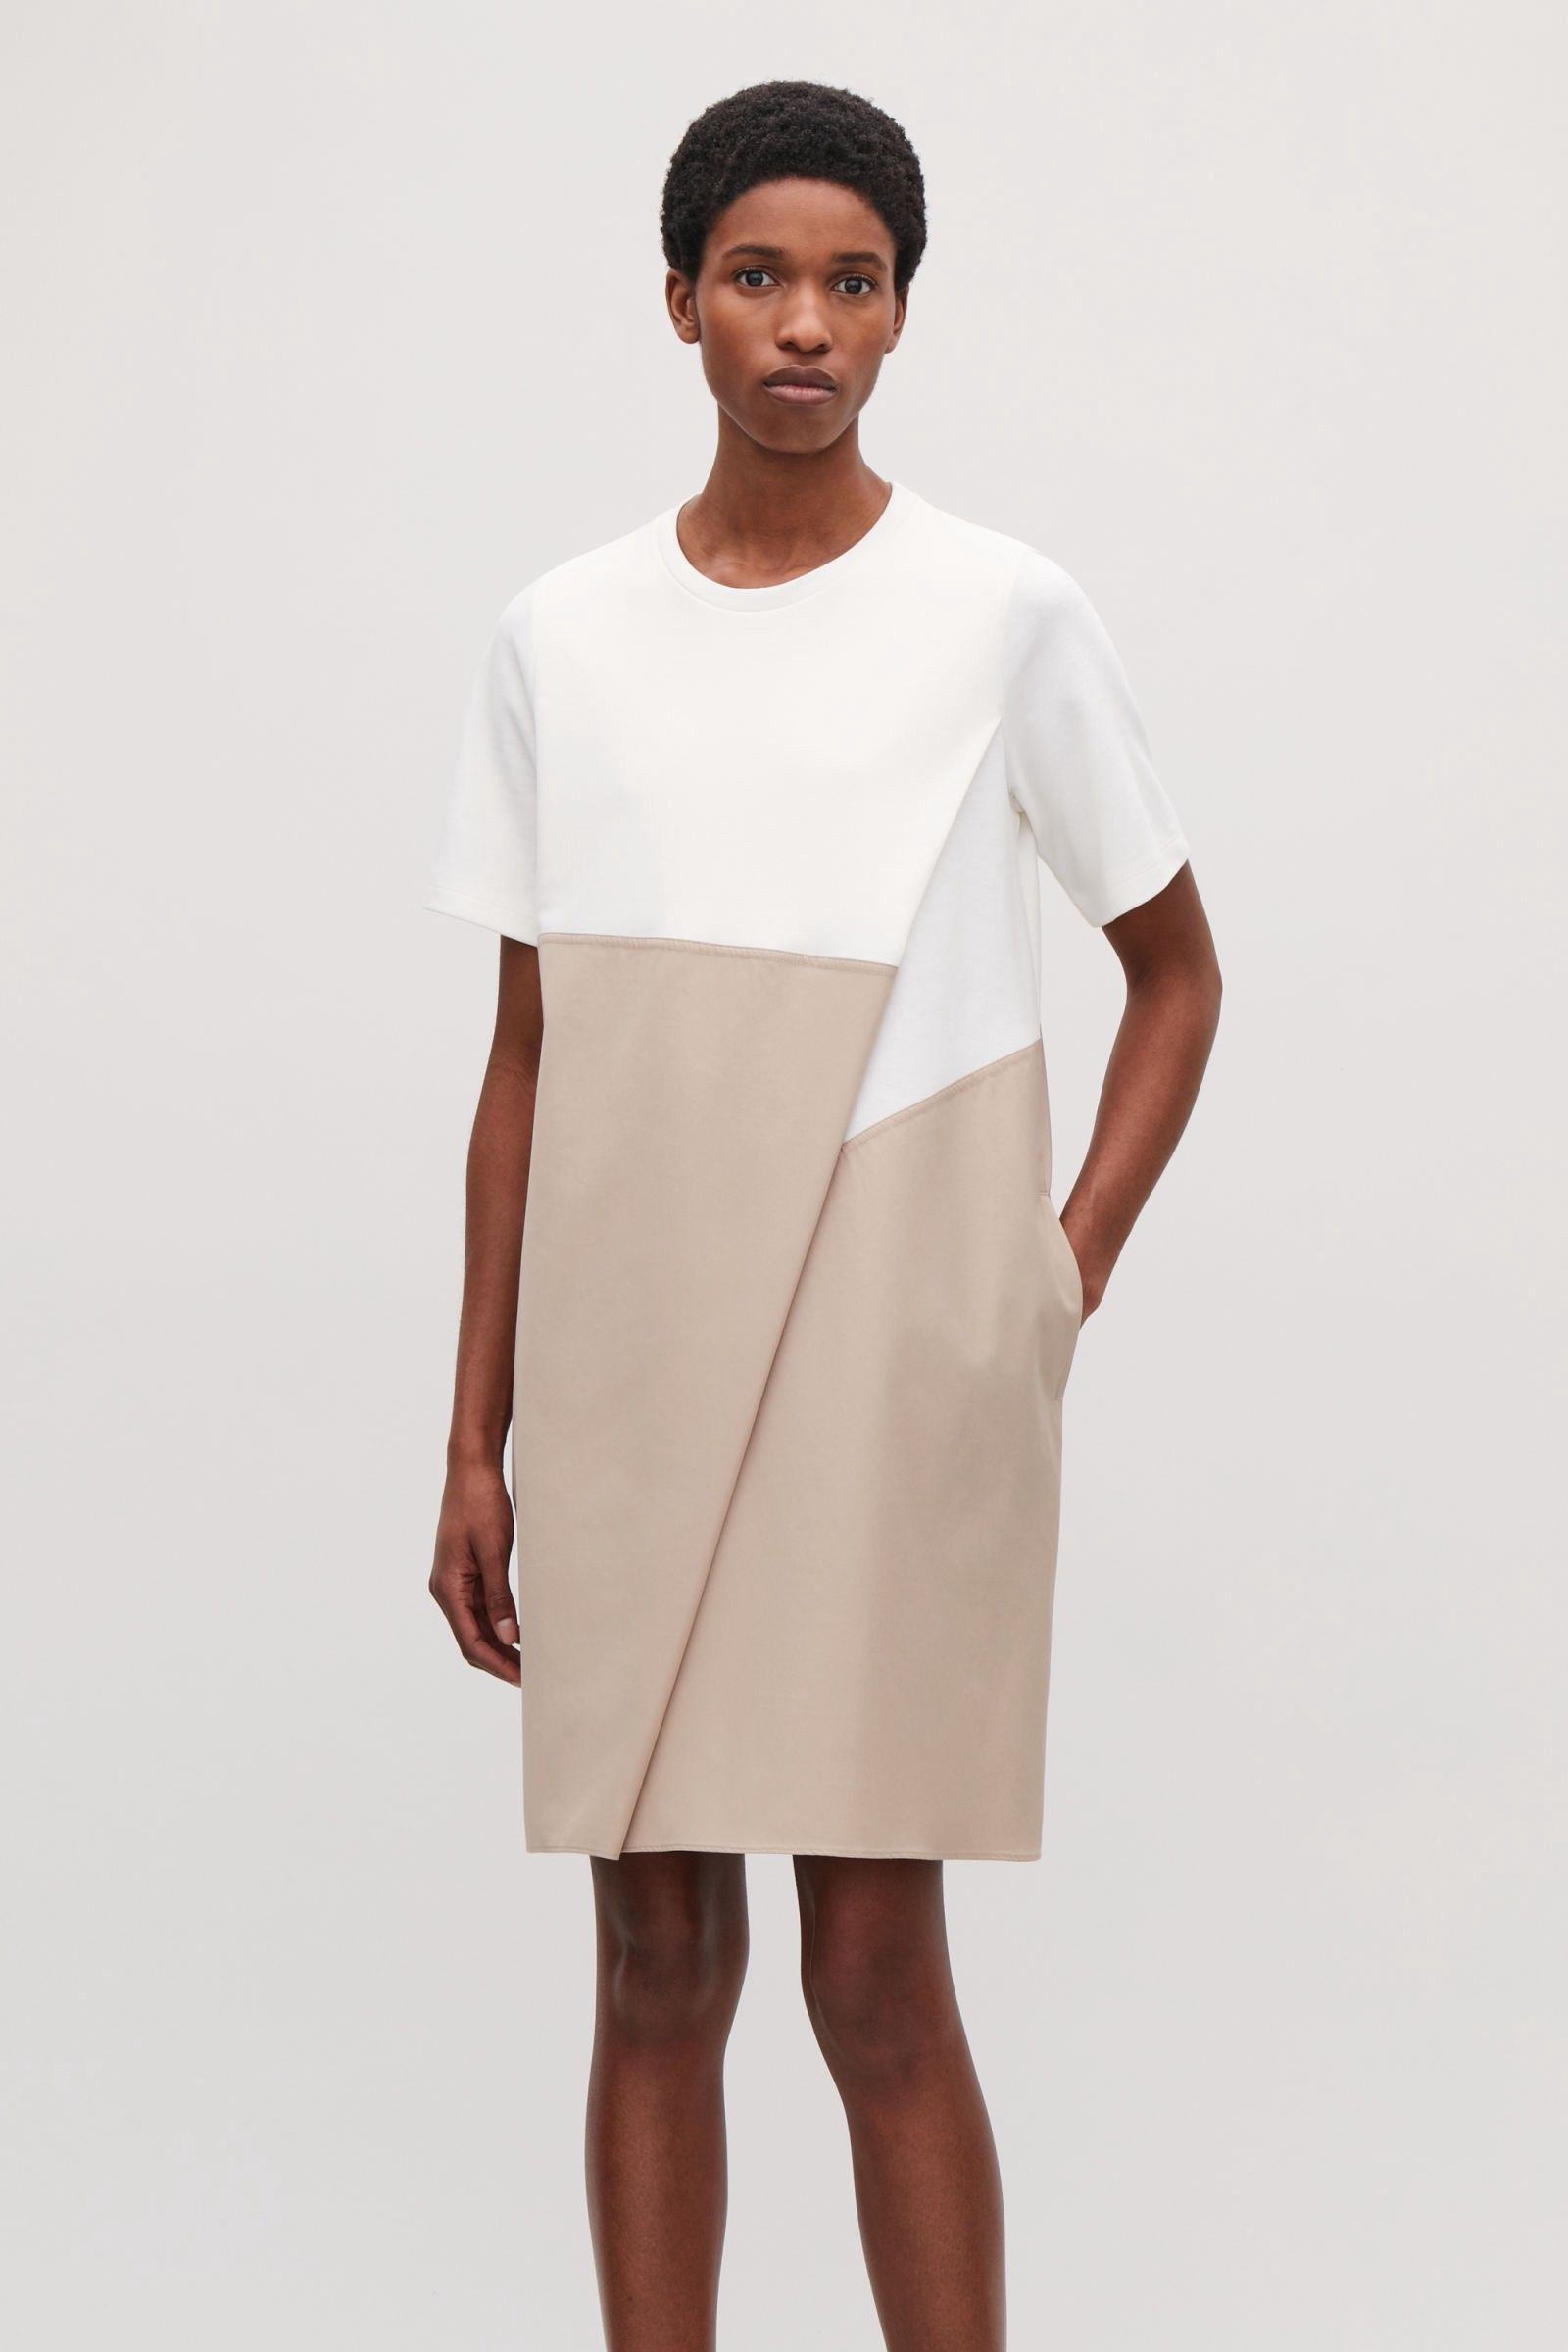 10abed2deff8 POPLIN-PANELLED JERSEY DRESS - ivory(OUT OF STOCK) by COS | d dress ...